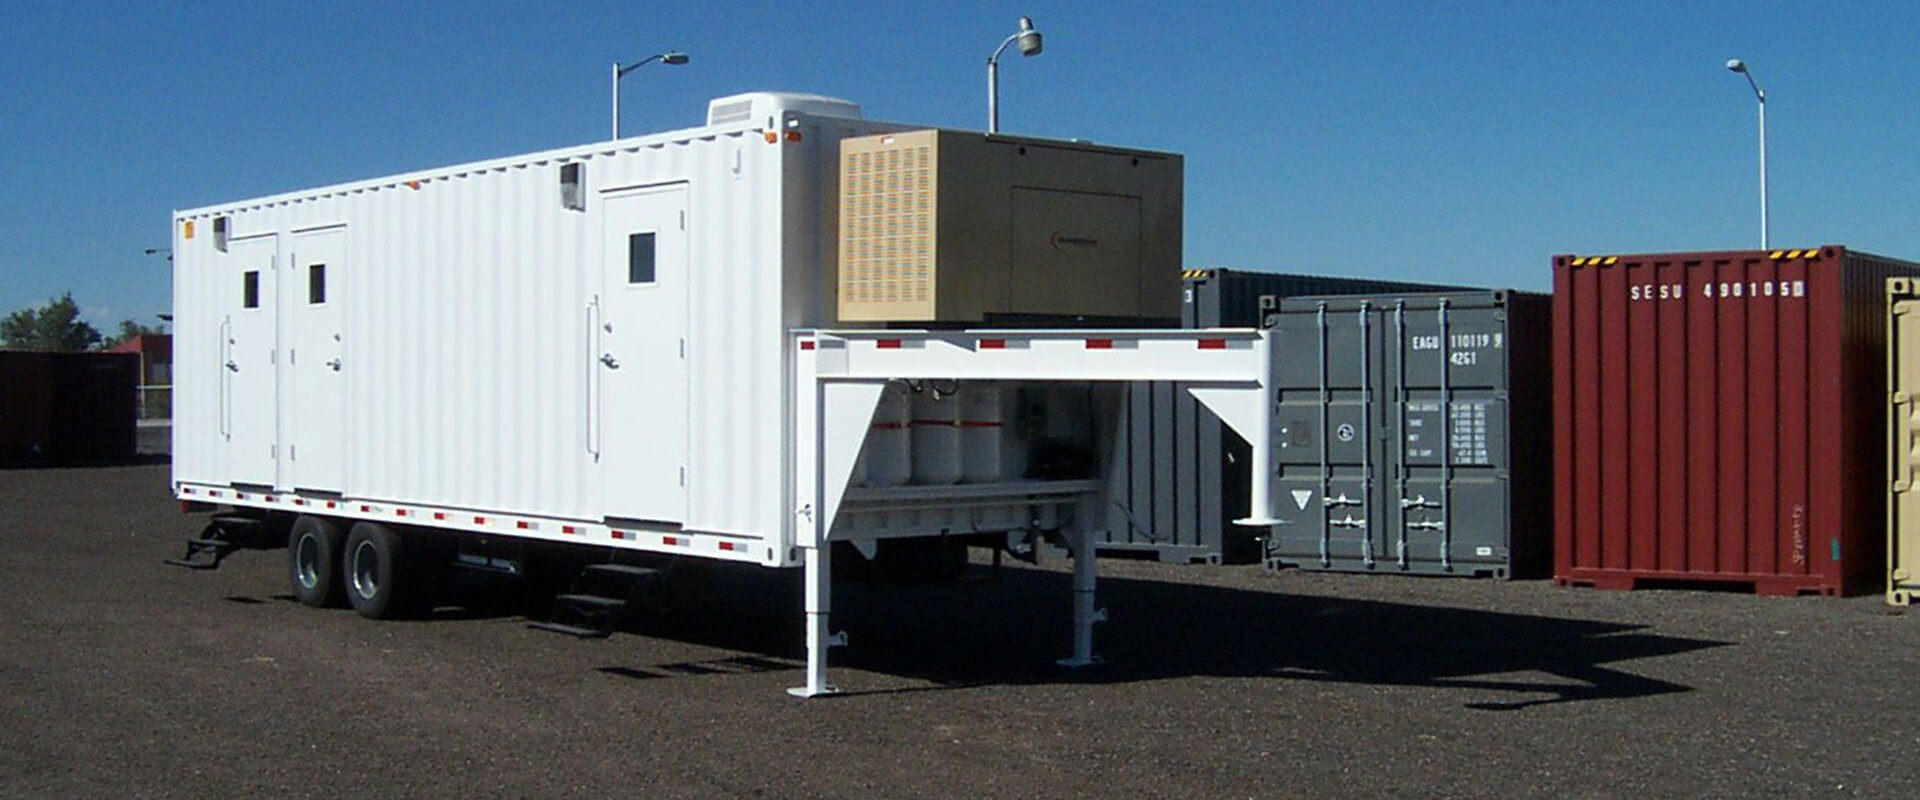 Shipping Container Trailer >> Storage Containers Albuquerque Portable Shipping Maloy Mobile